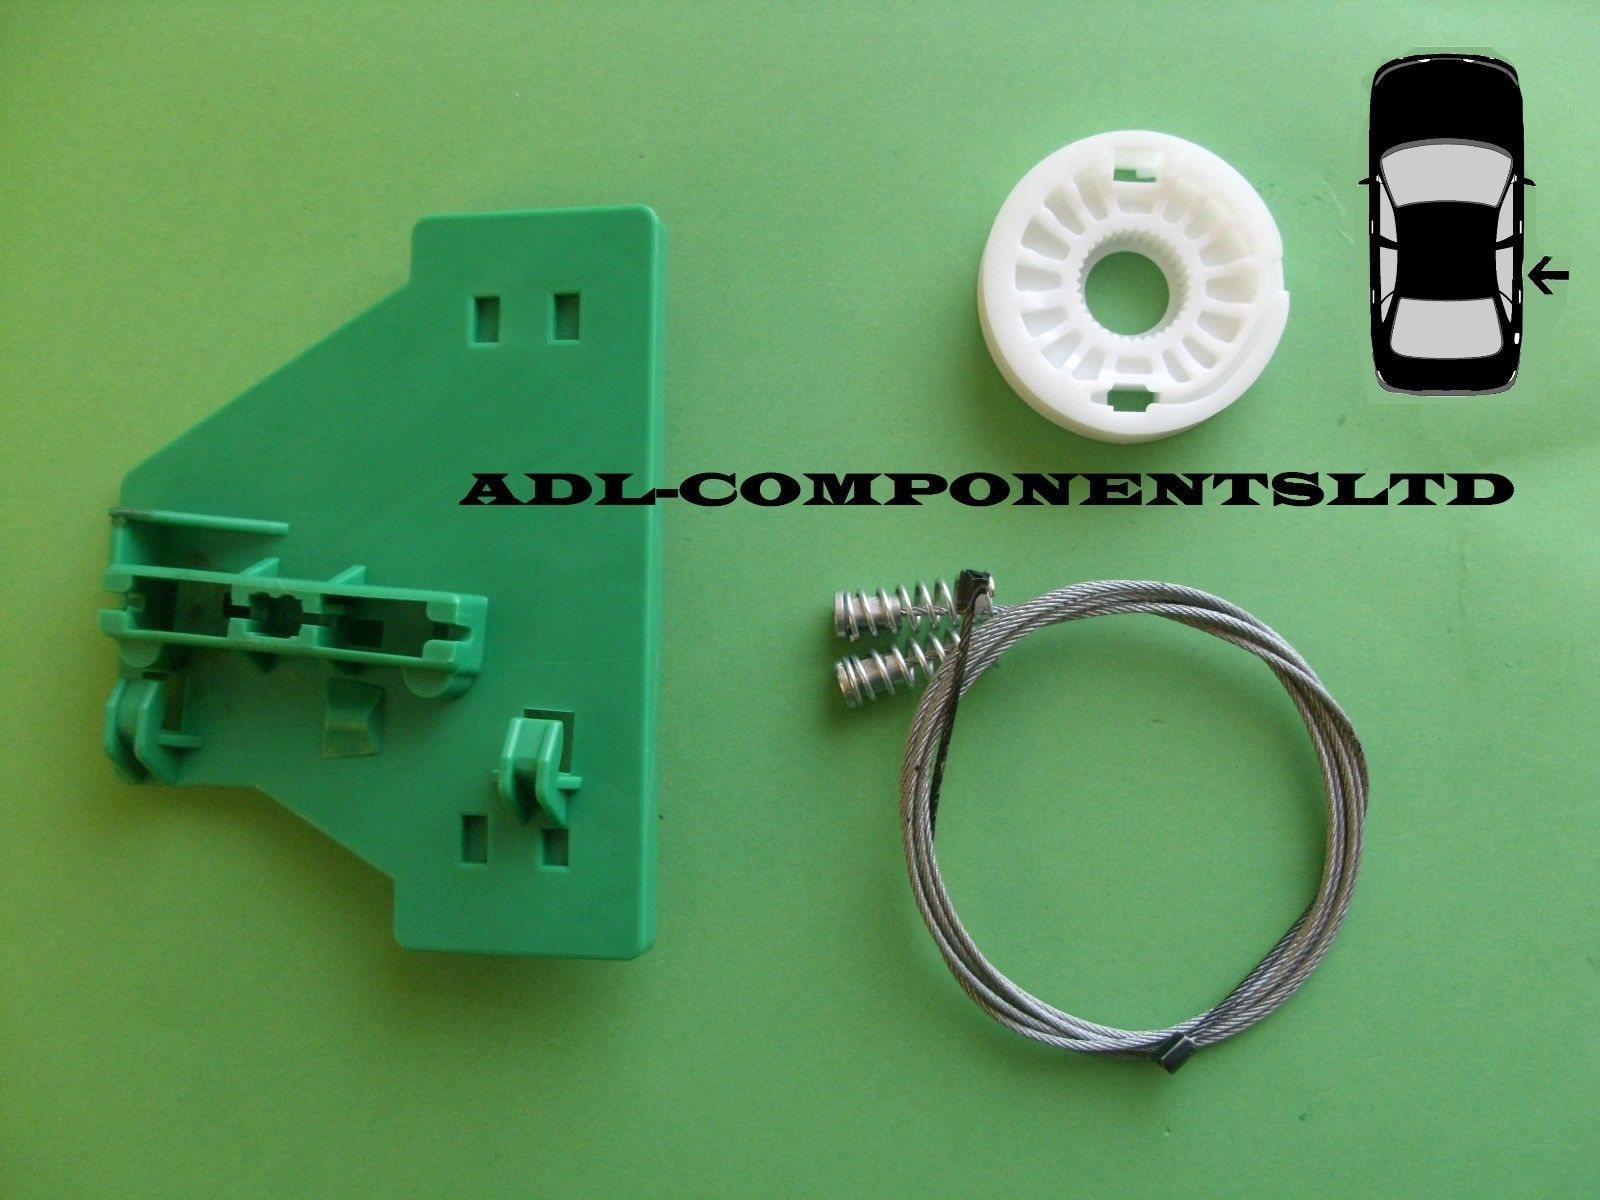 Audi a4 window regulator repair kit rear right door 2002 for 2002 audi a4 rear window regulator